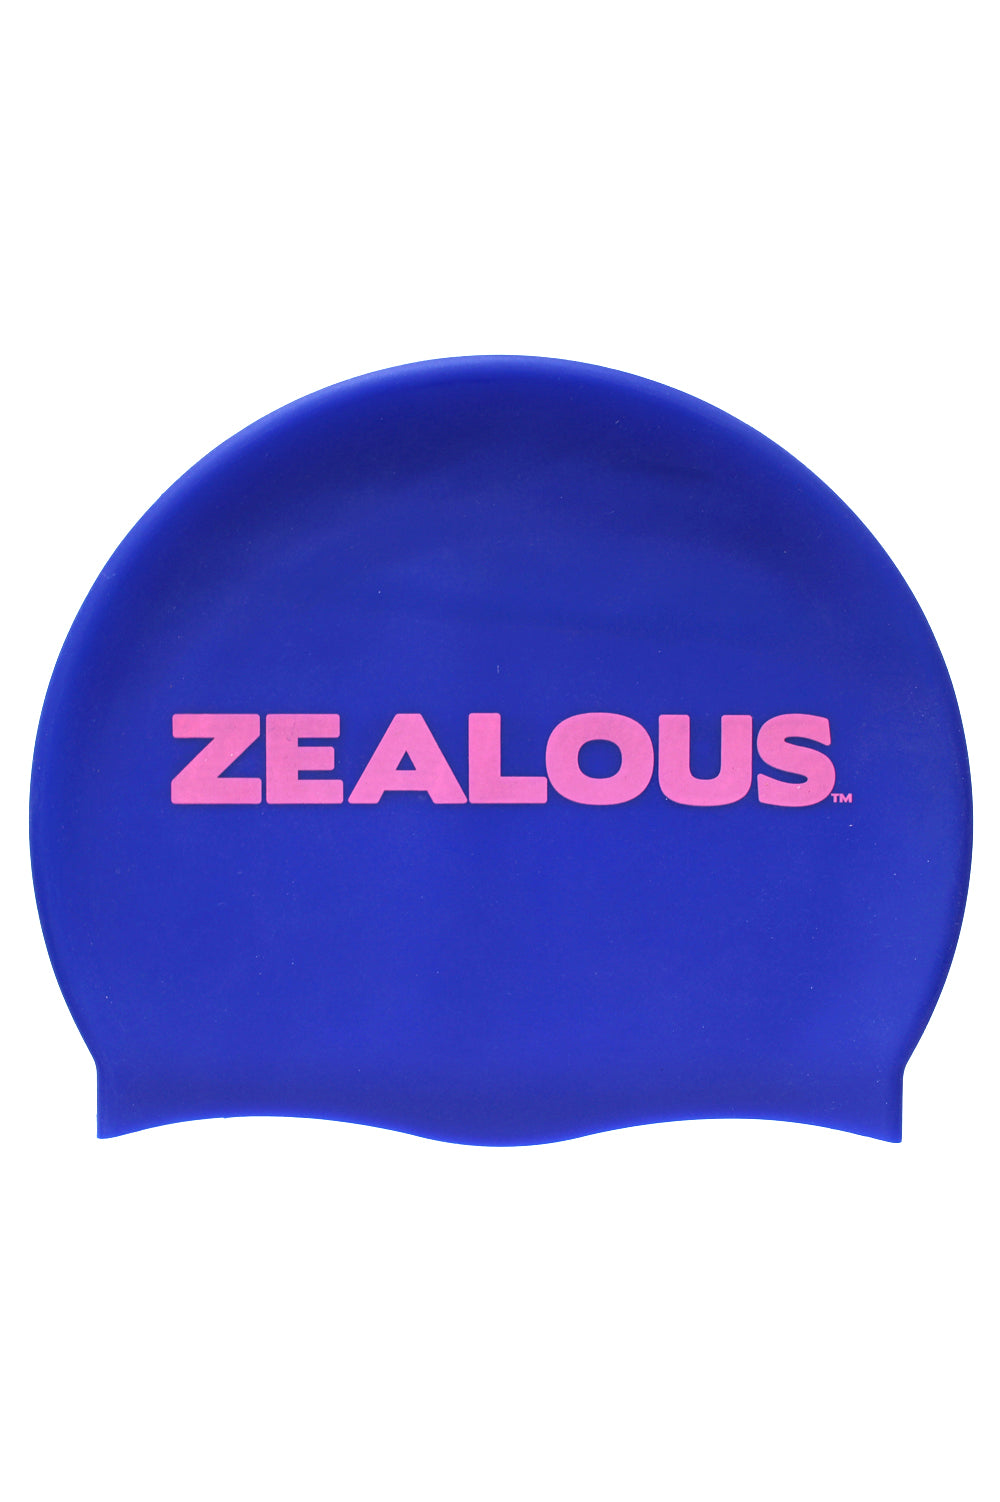 Basic Purple Accessories - Shop Zealous Training Swimwear